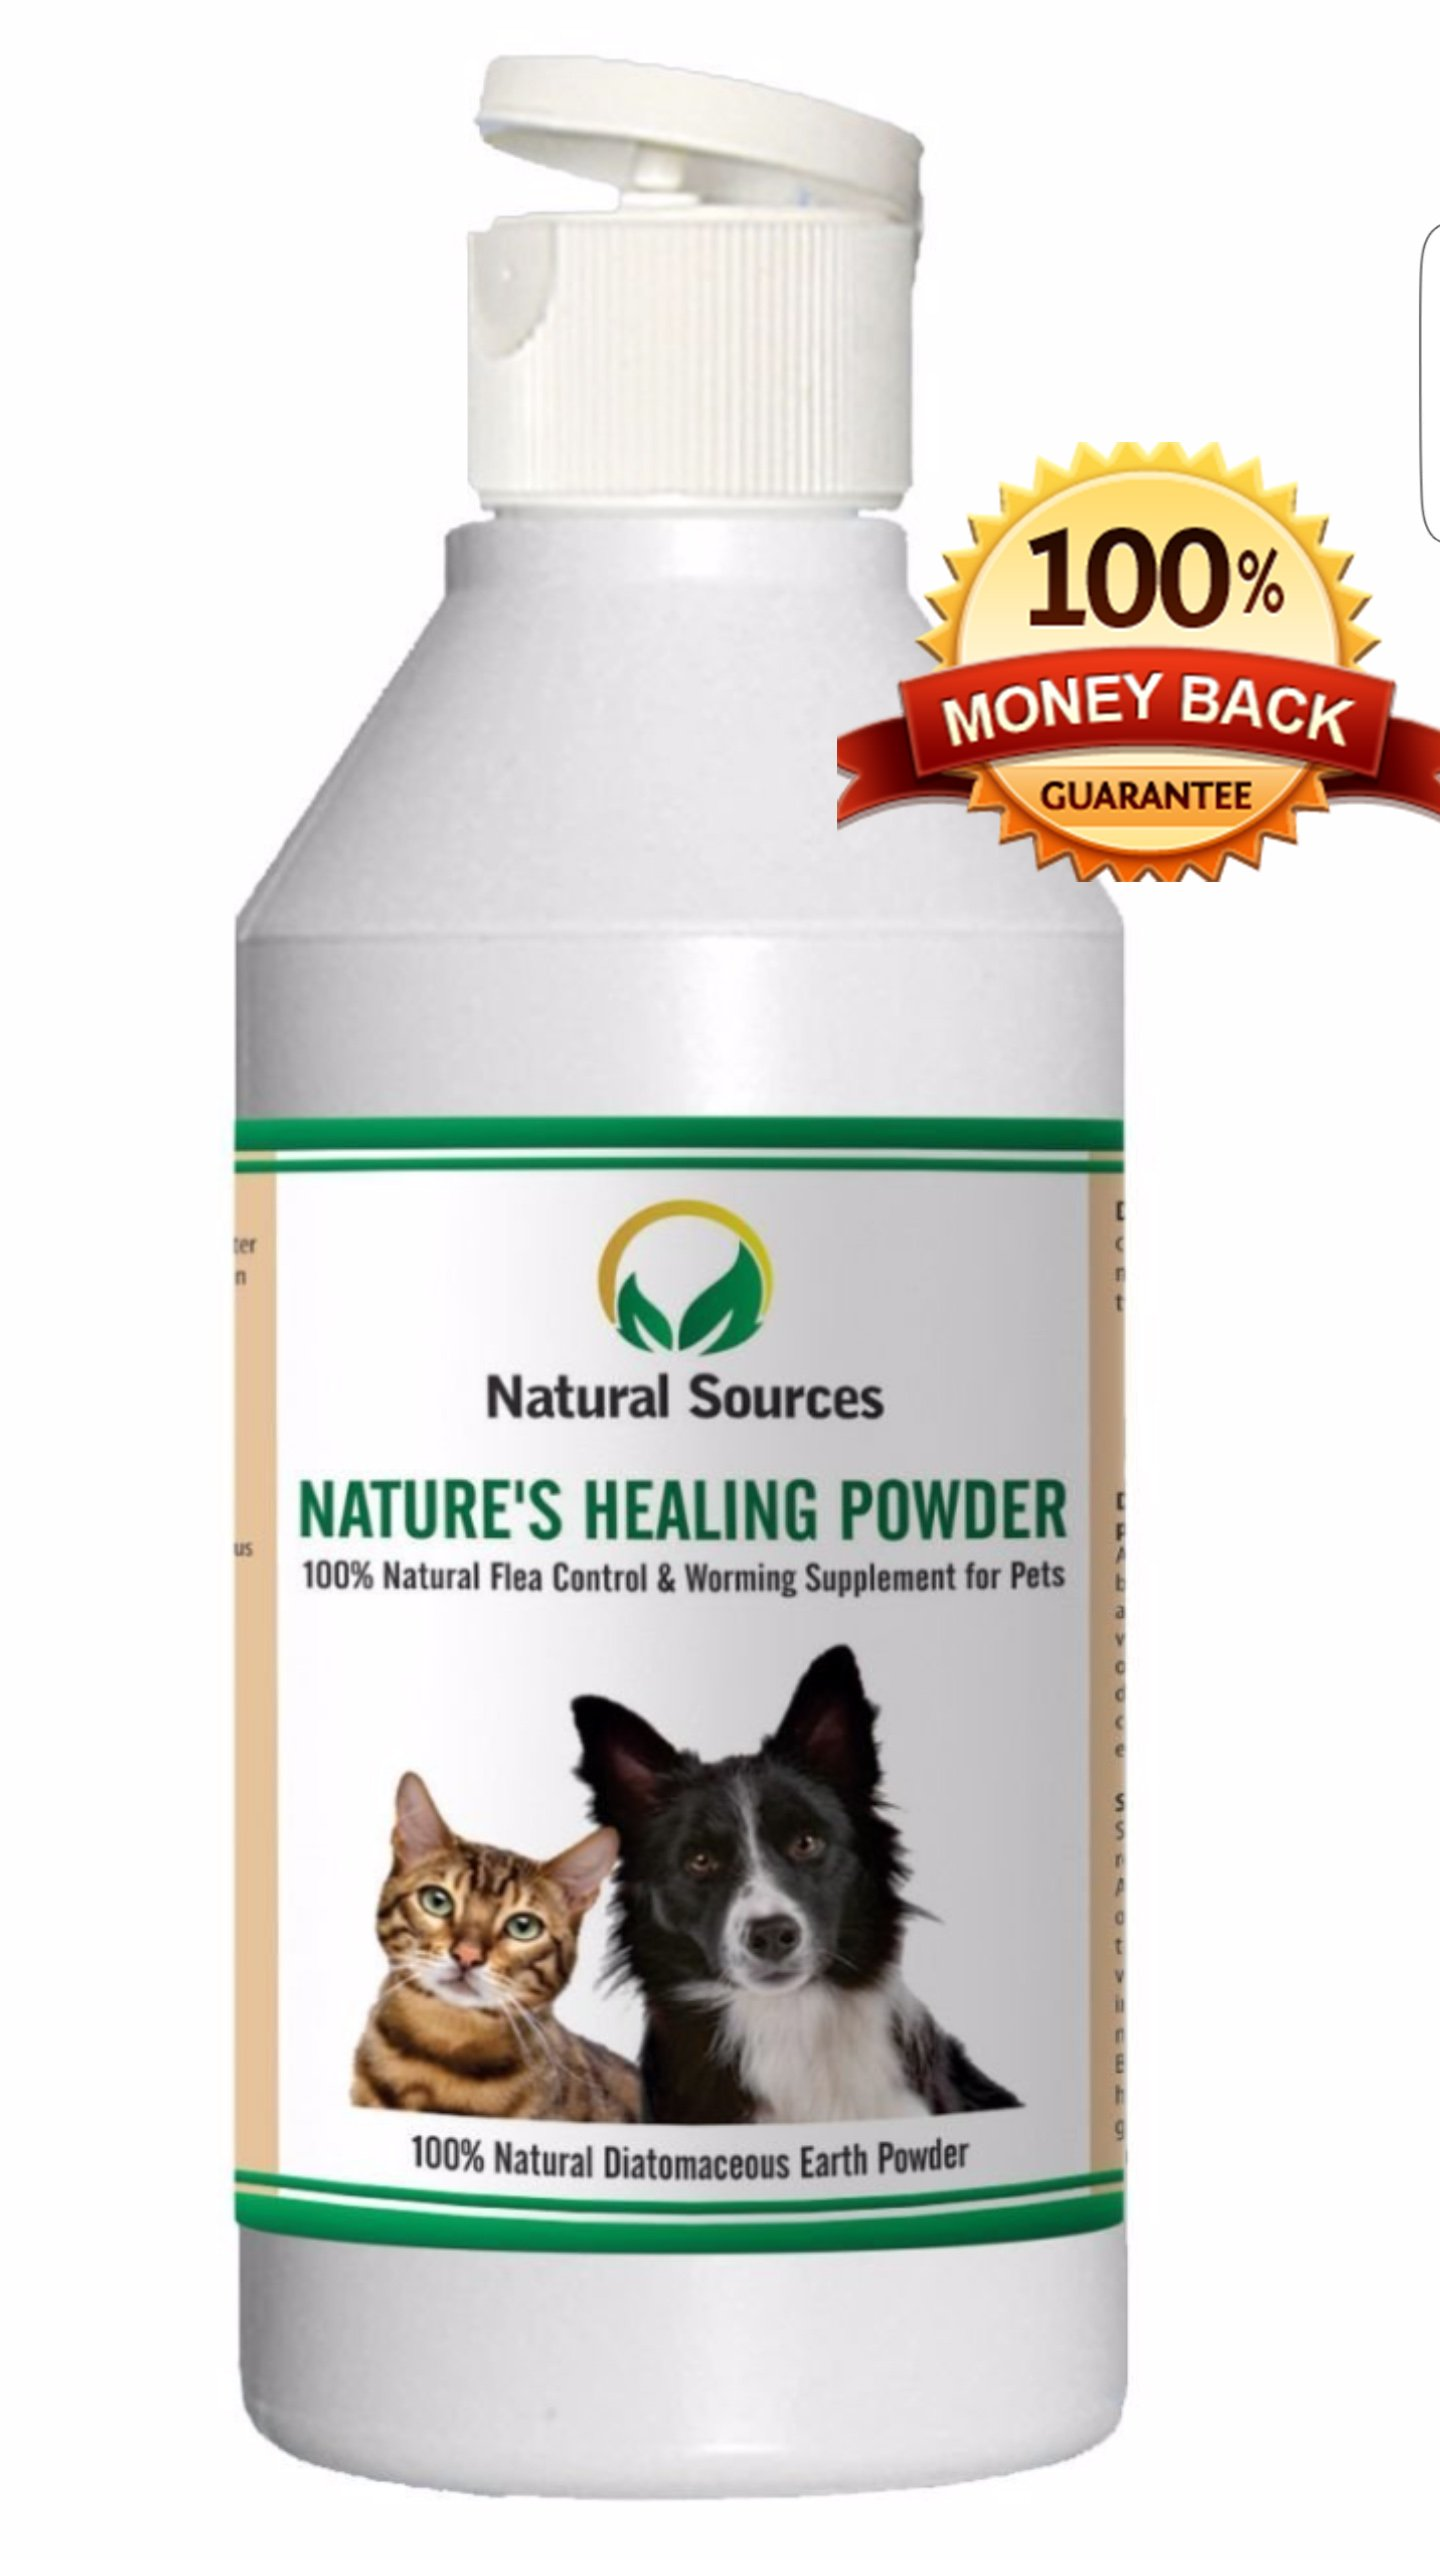 100% Natural Flea Treatment Cats & For Dogs by Natural Sources™ Natural Flea Spray for the Home, Carpets, Bedding etc. – Safe For Use Around Kids & All Pets. Purest Quality Human Food Grade Diatomaceous Earth Powder.